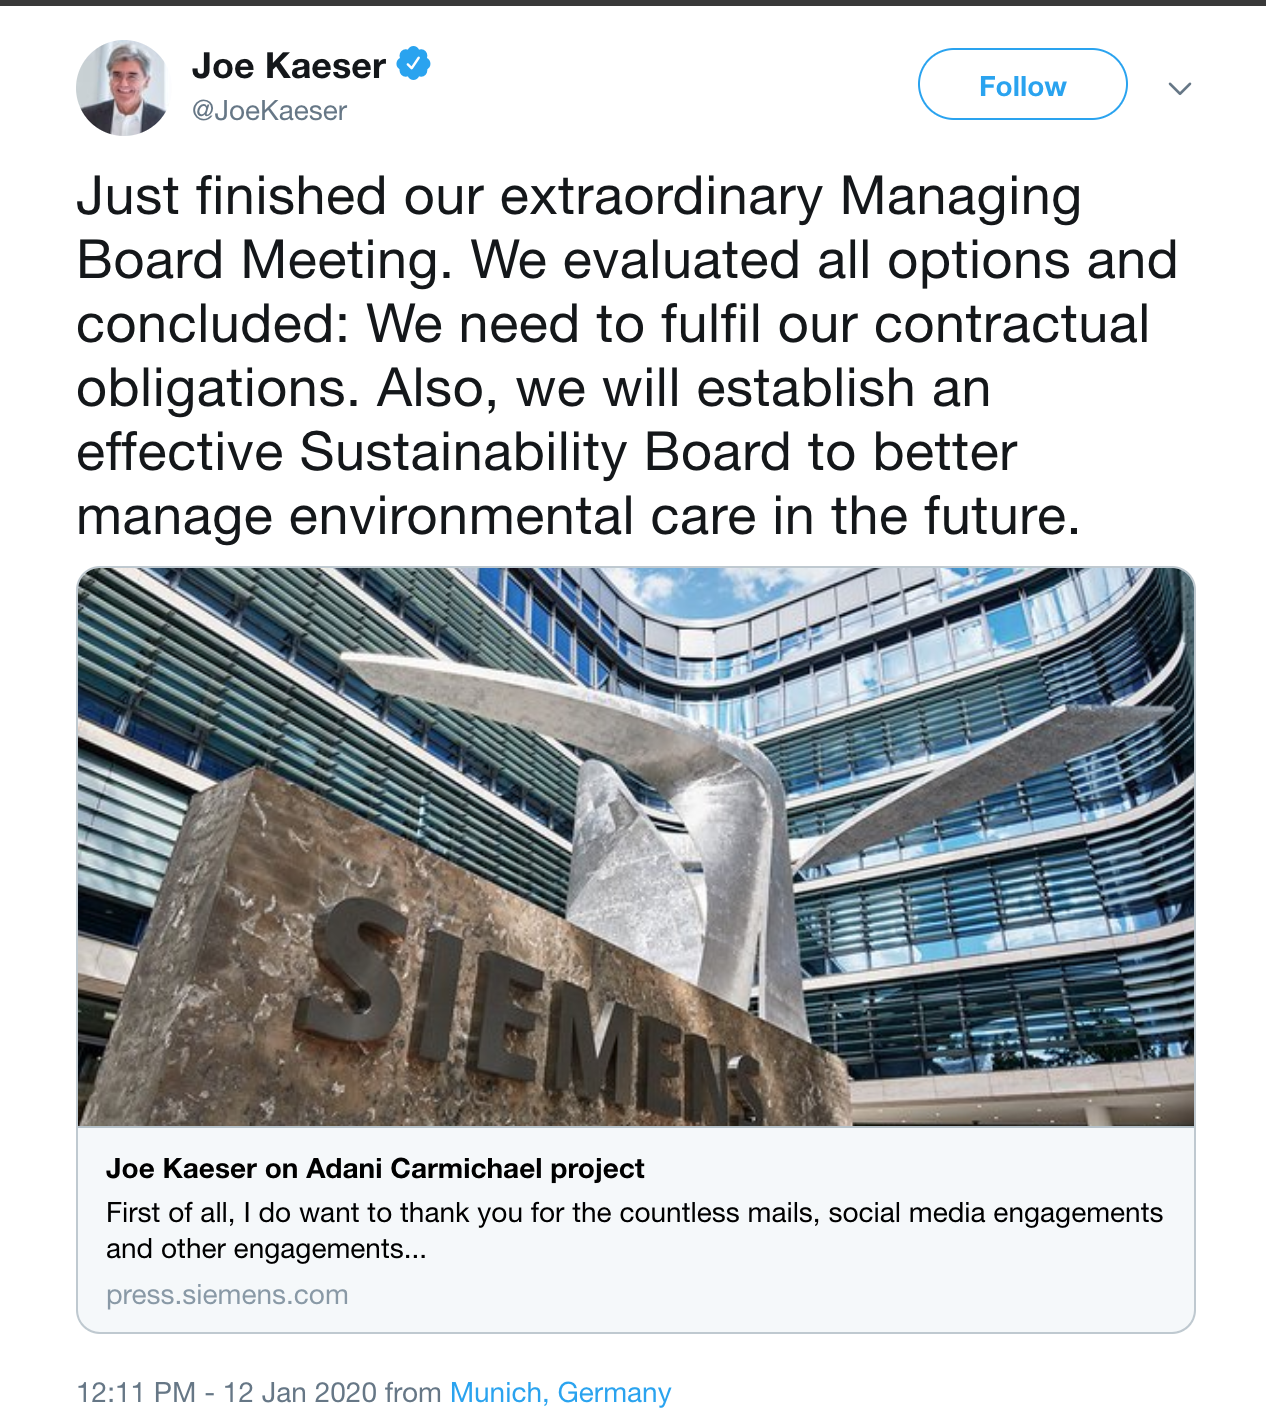 Twitter post of Siemen's CEO